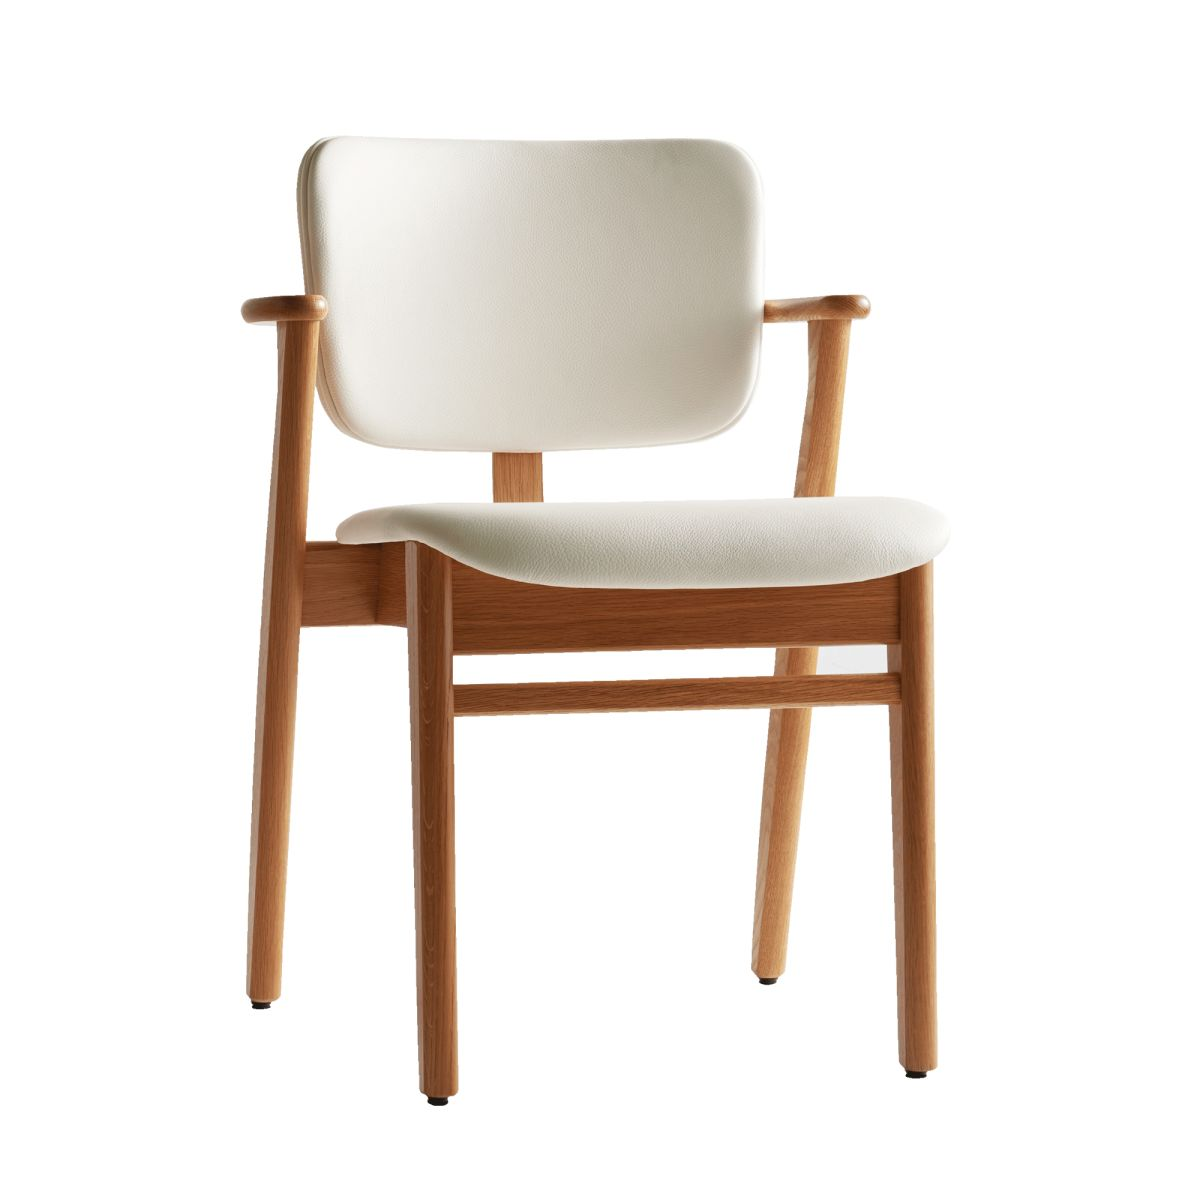 Domus Chair clear lacquer oak leather uphostery white_2